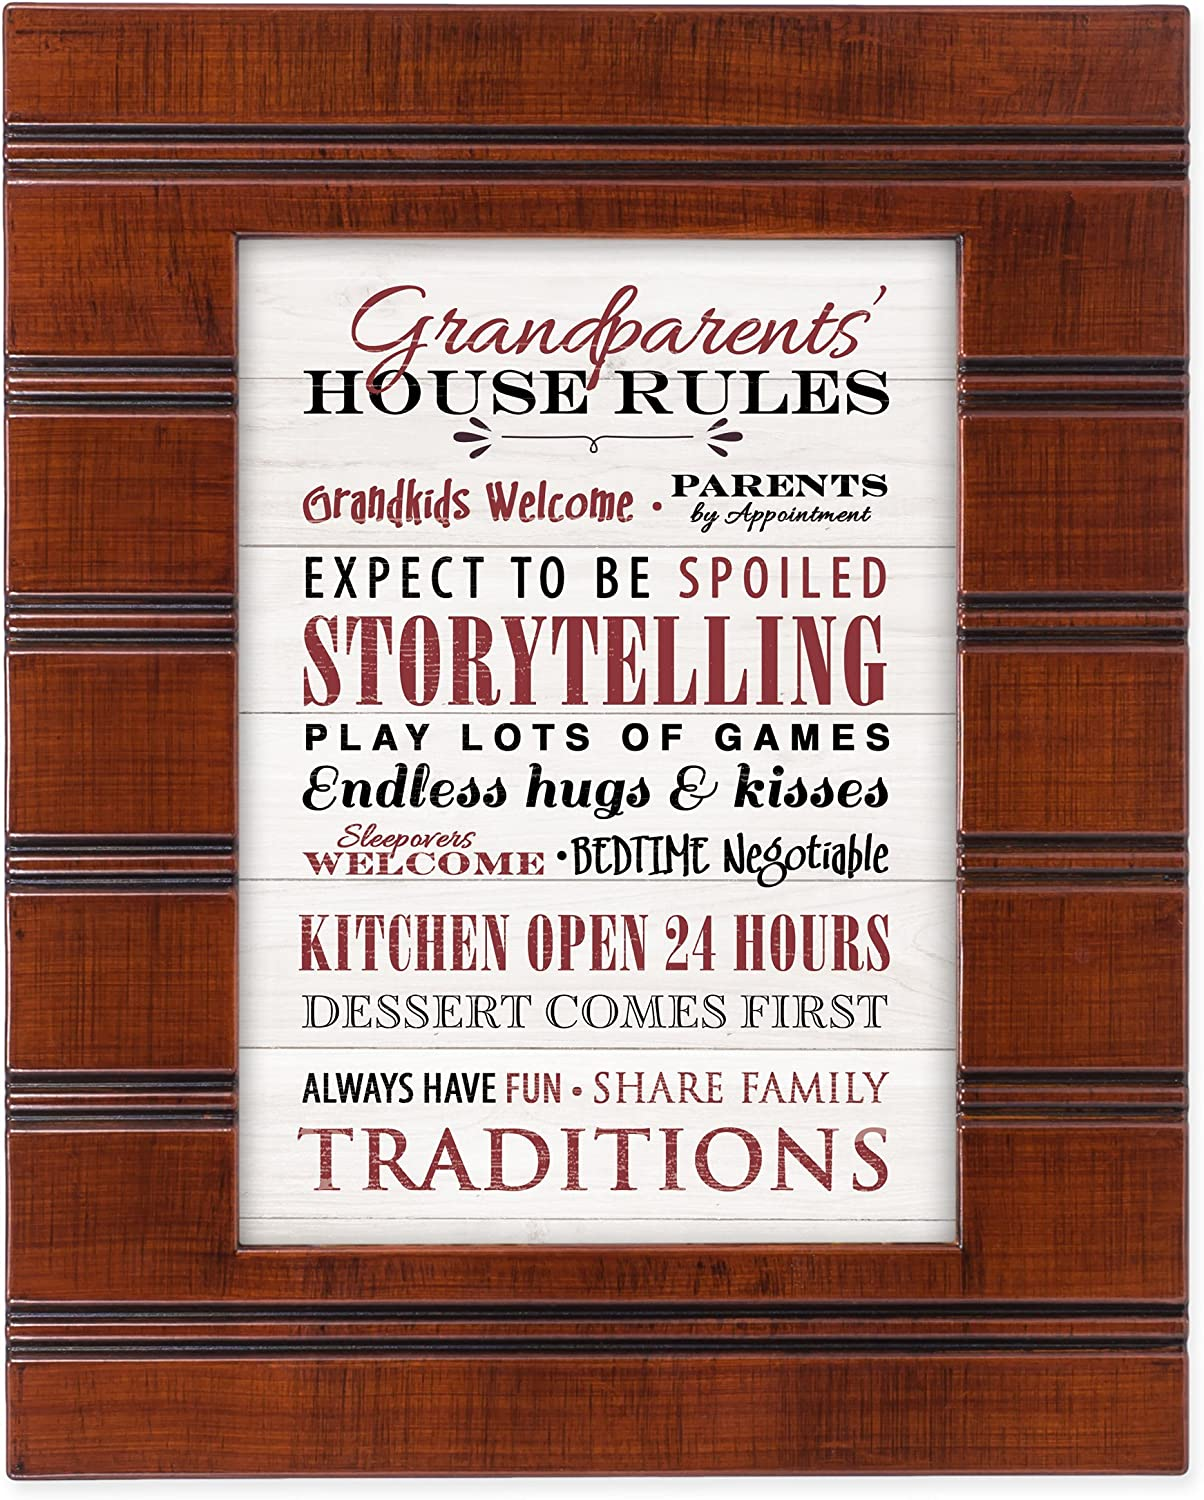 Cottage Garden Grandparents' House Rules Wood Finish 8 x 10 Framed Wall Art Plaque